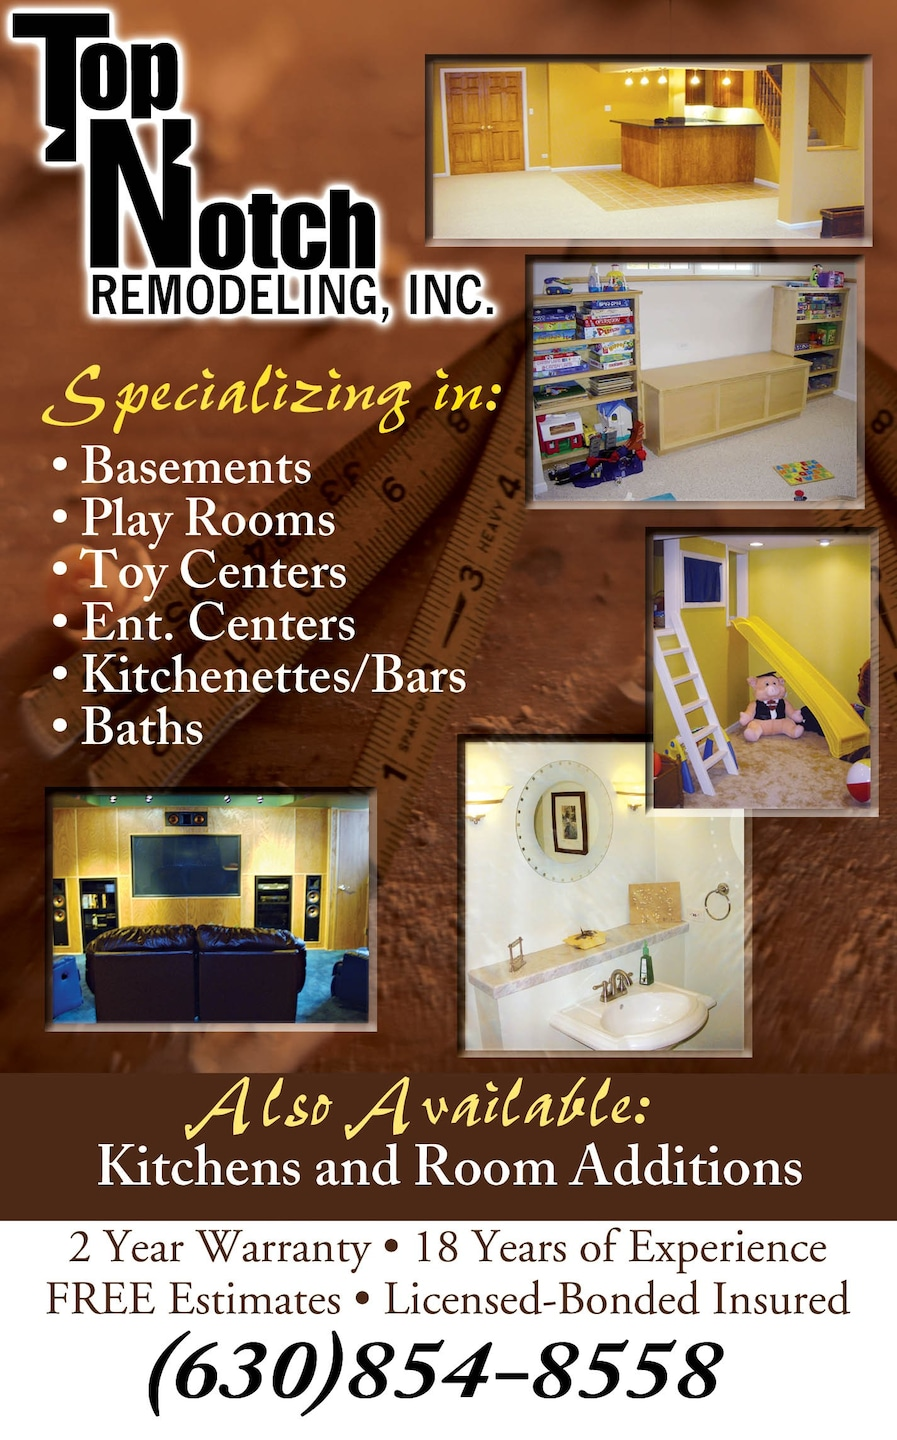 Top Notch Remodeling Inc